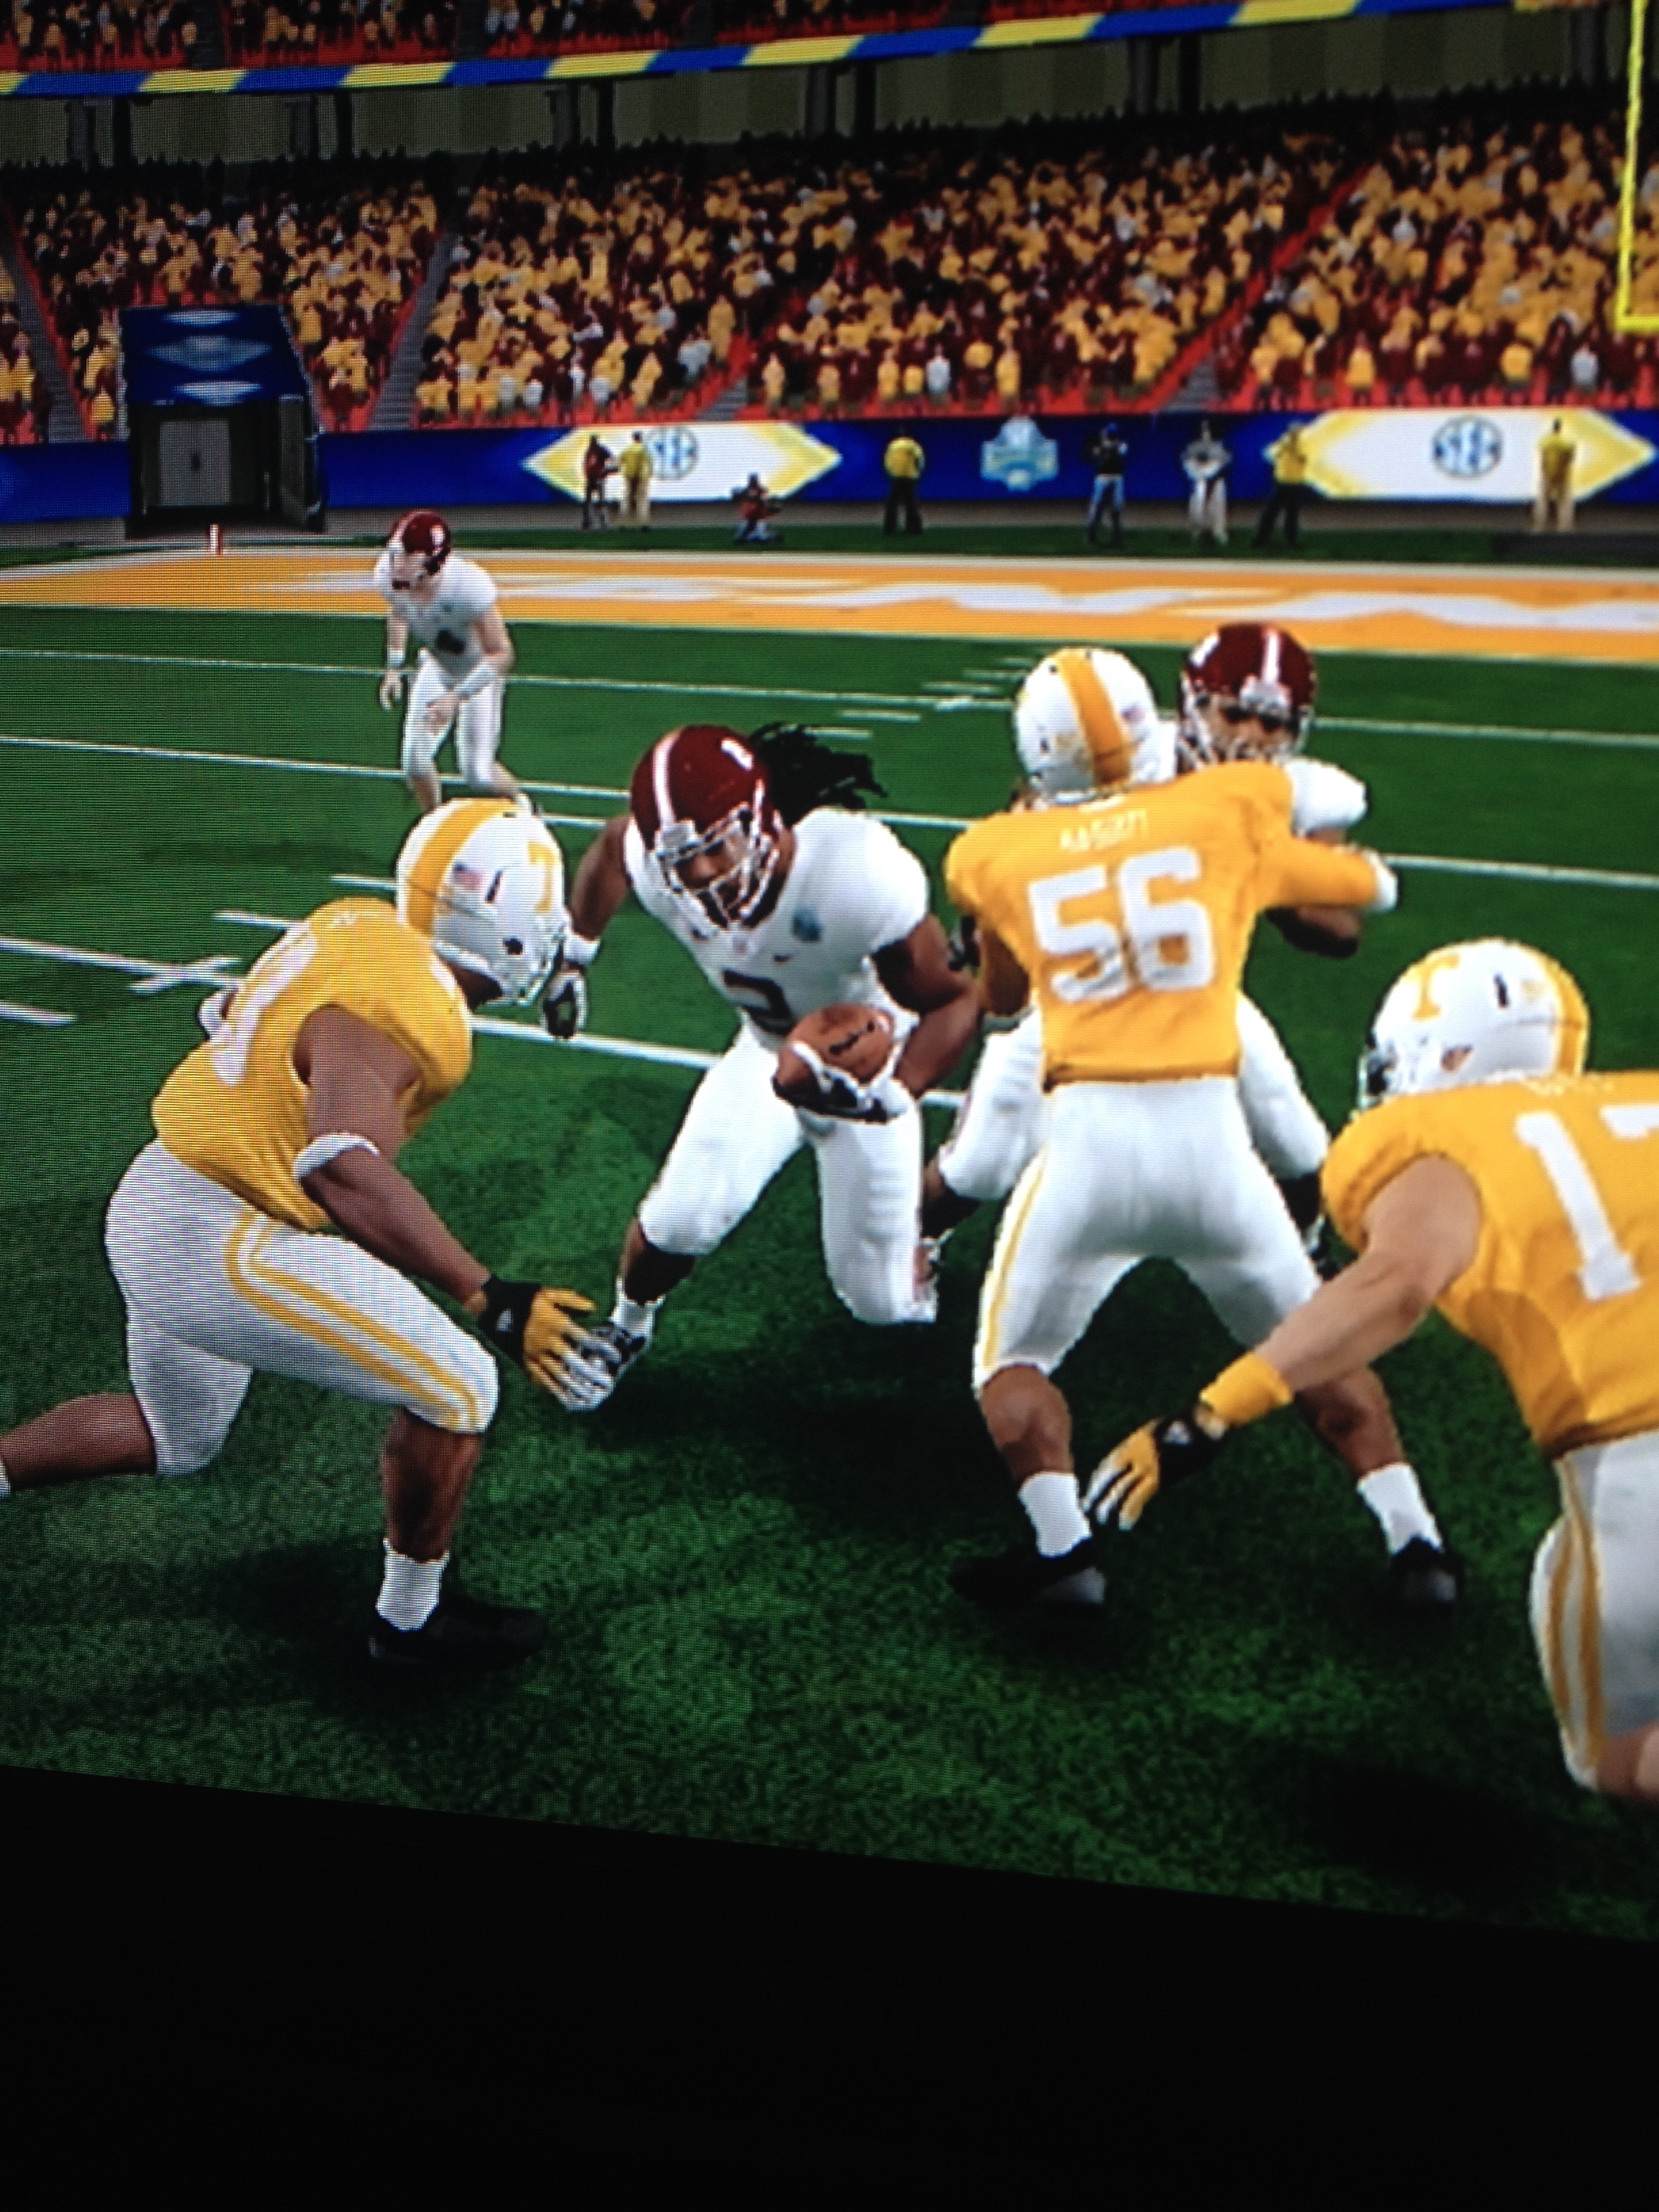 The Best And Worst Sec Player Ratings In Ncaa Football 16 Video Game